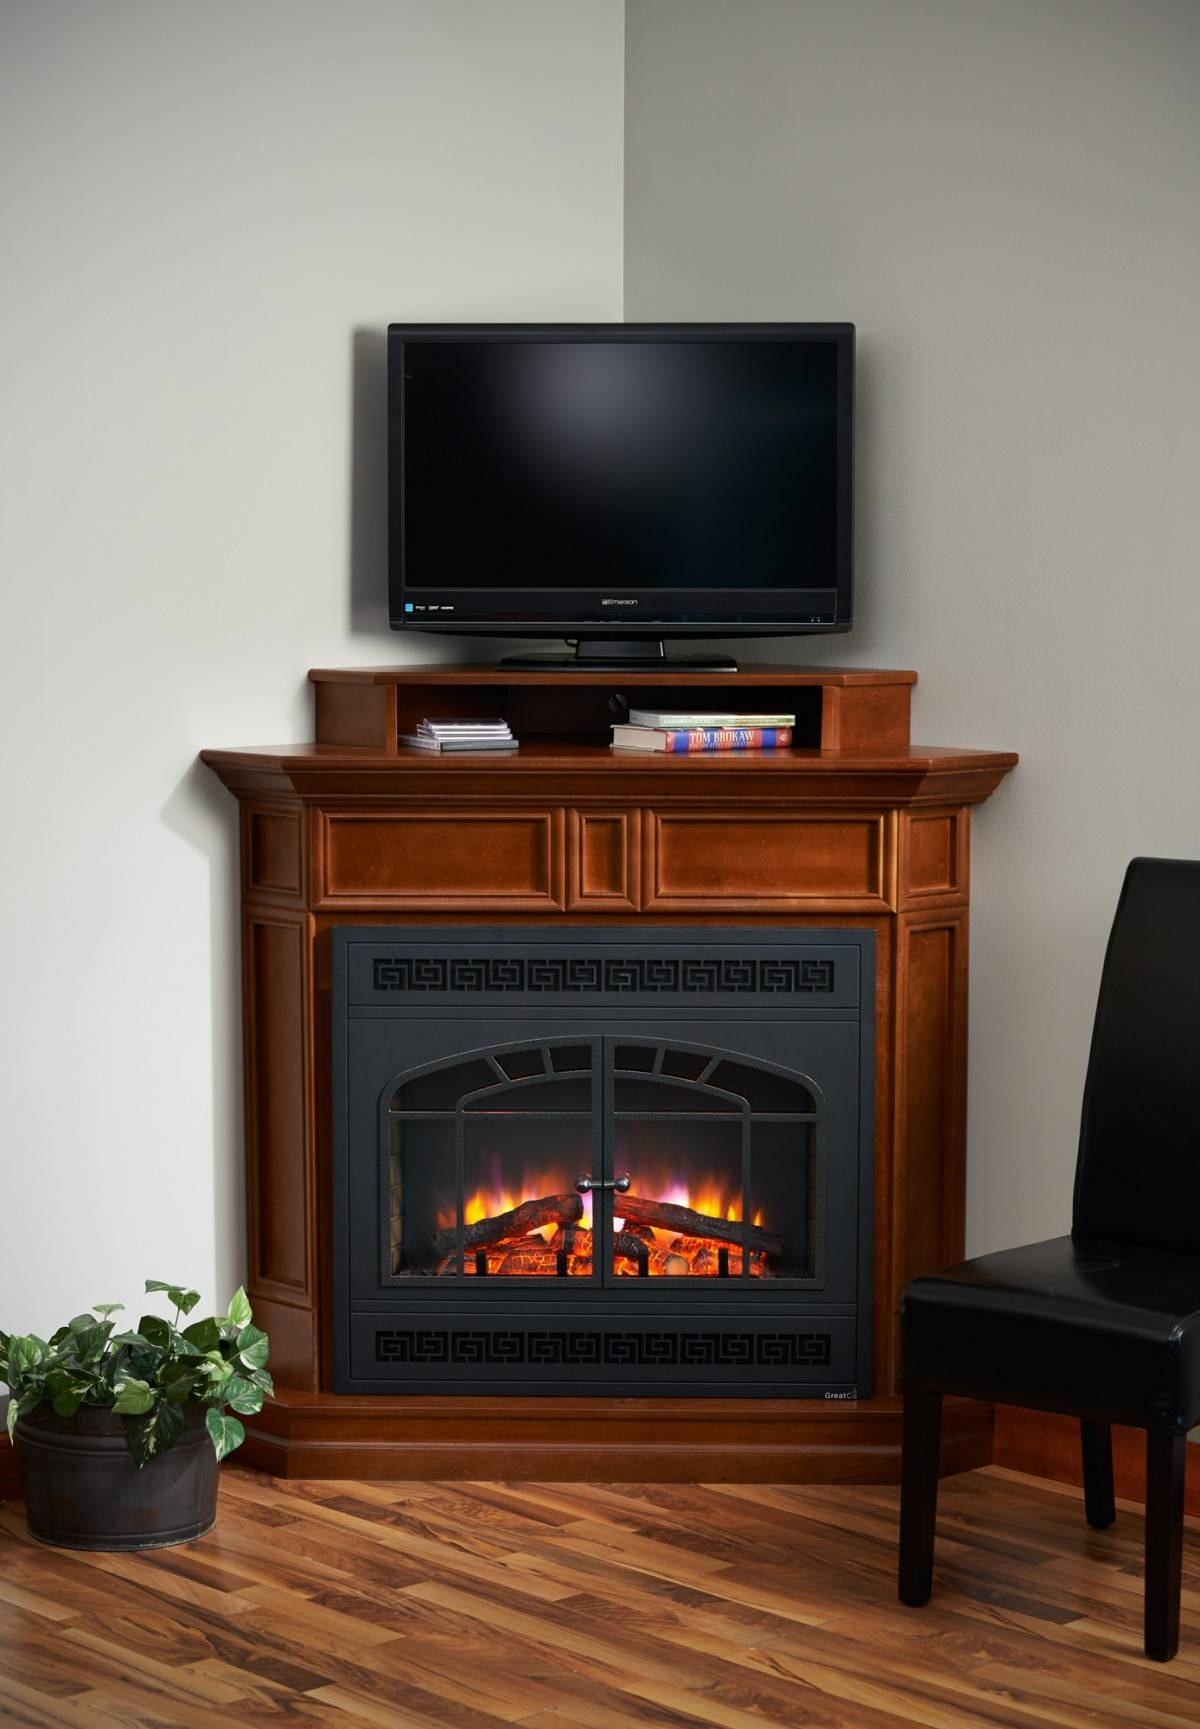 Wooden Corner Tv Stand With Fireplace - Decofurnish with regard to Cornet Tv Stands (Image 15 of 15)